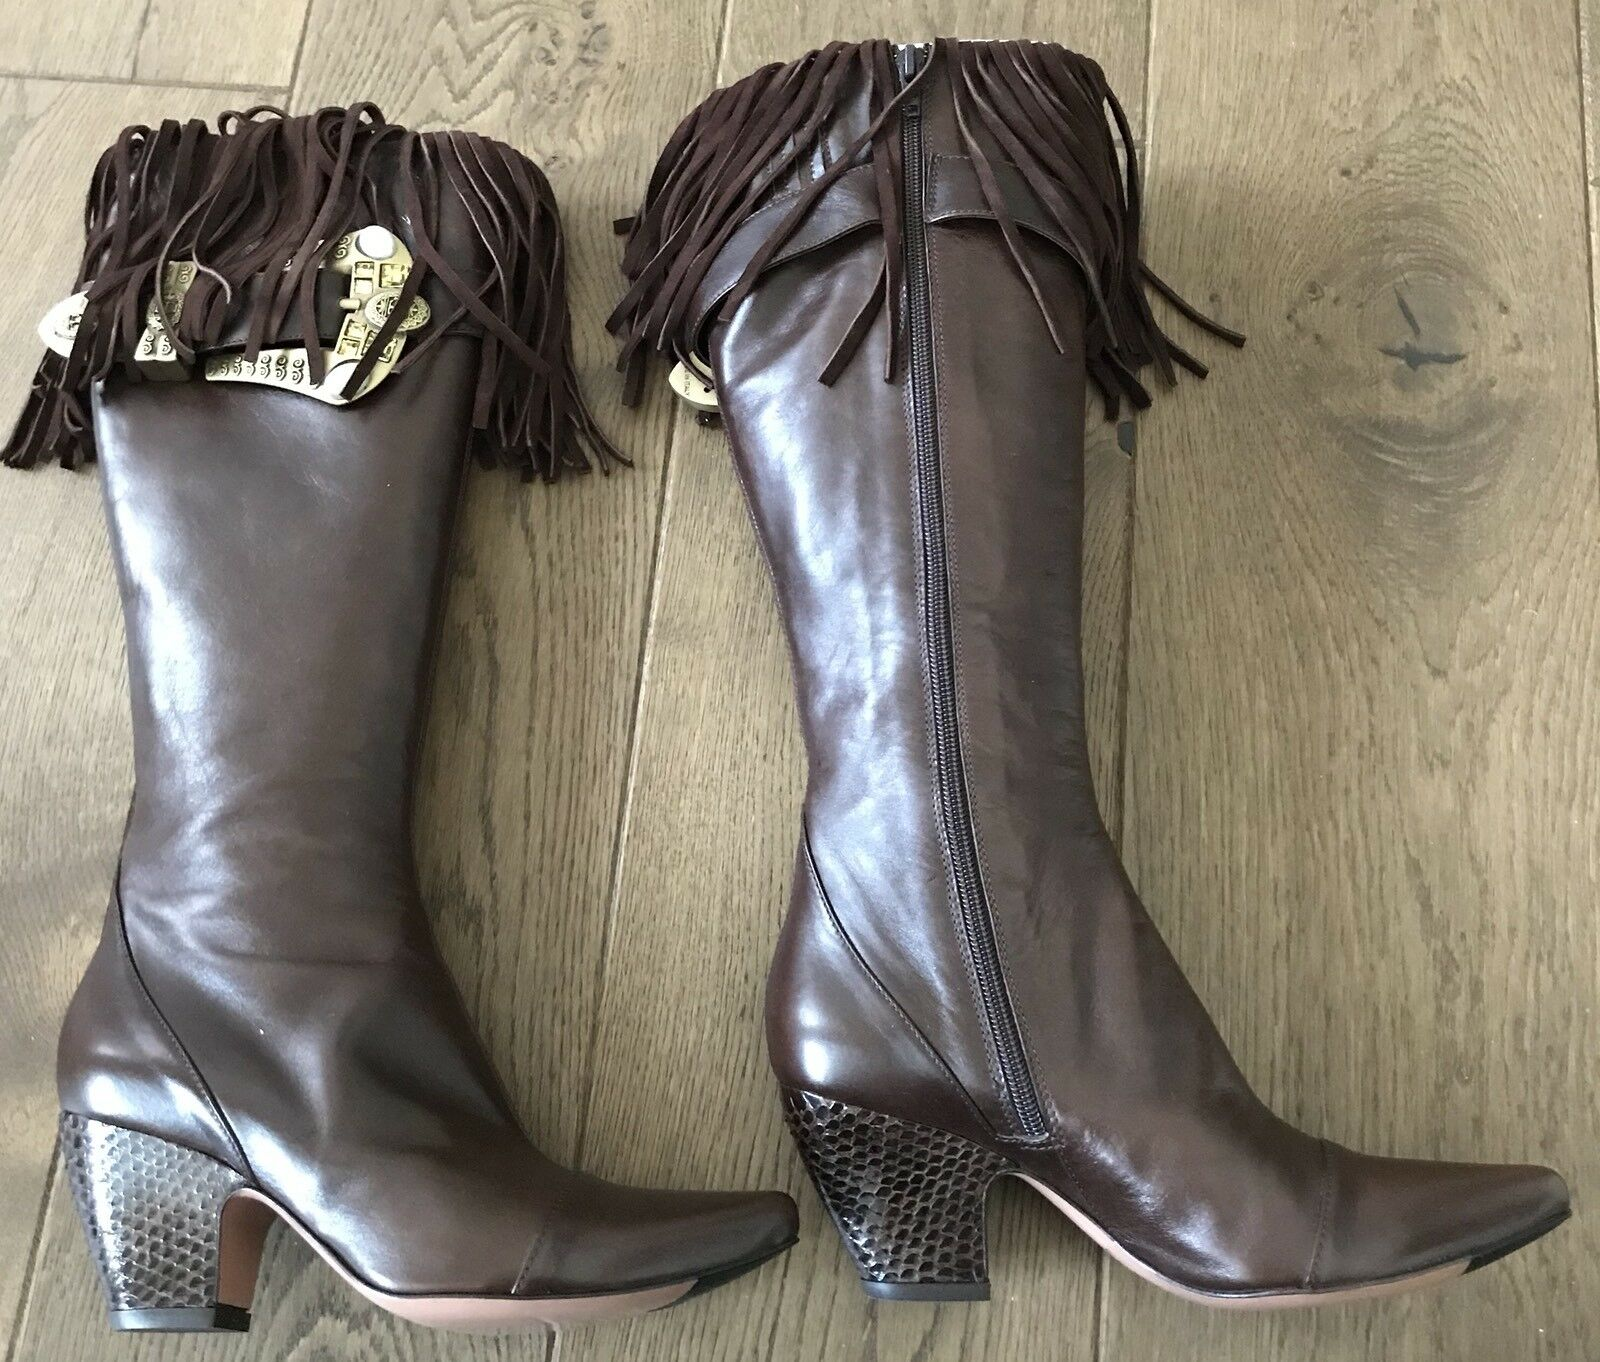 Damenschuhe LES TROPEZIENNES HIGH KNEE DK CHOCOLATE CALF LEATHER BOOTS - SIZE 37